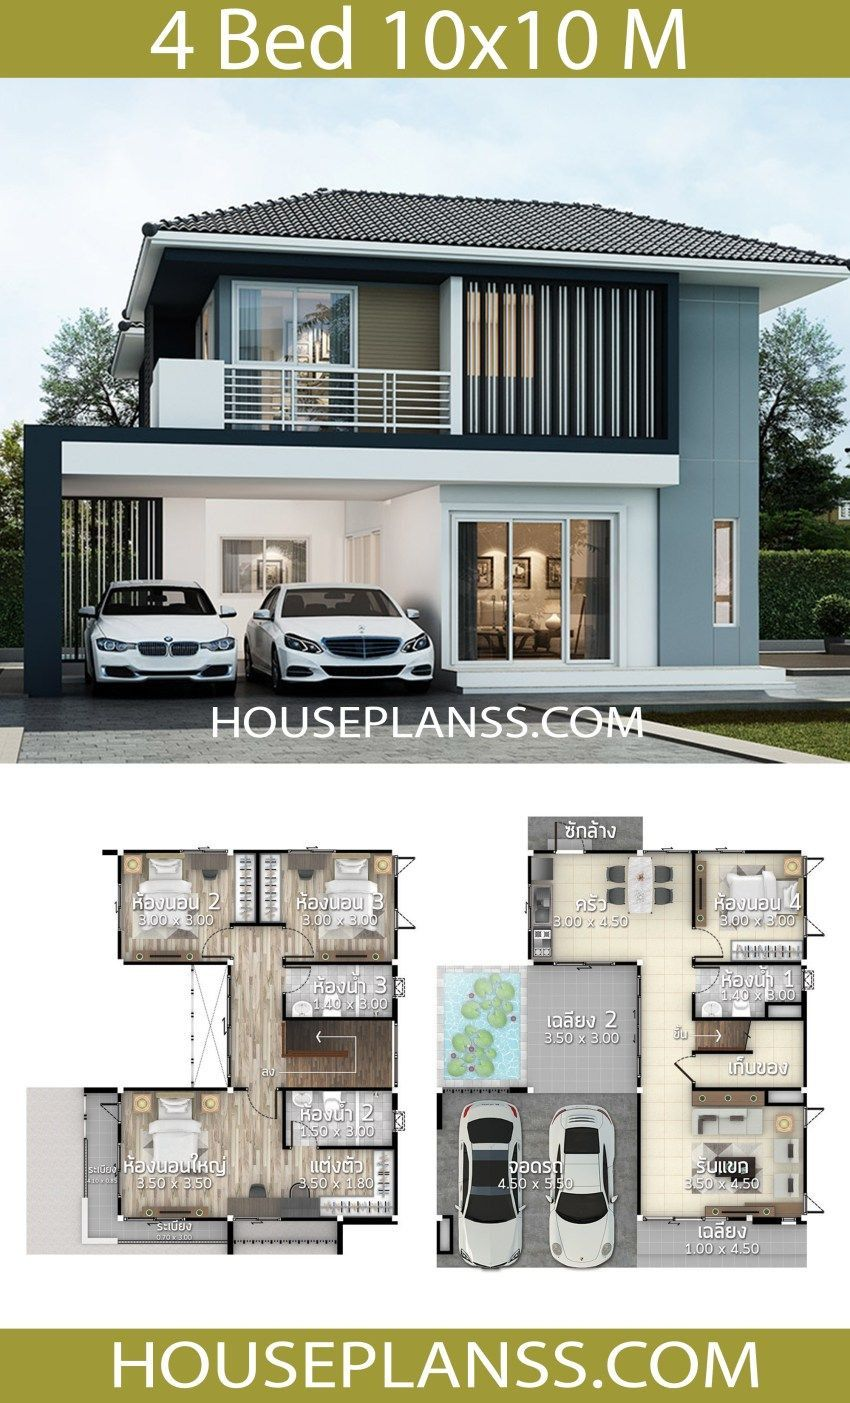 House Plans Idea 10x10 With 4 Bedrooms House Construction Plan Duplex House Design House Plan Gallery